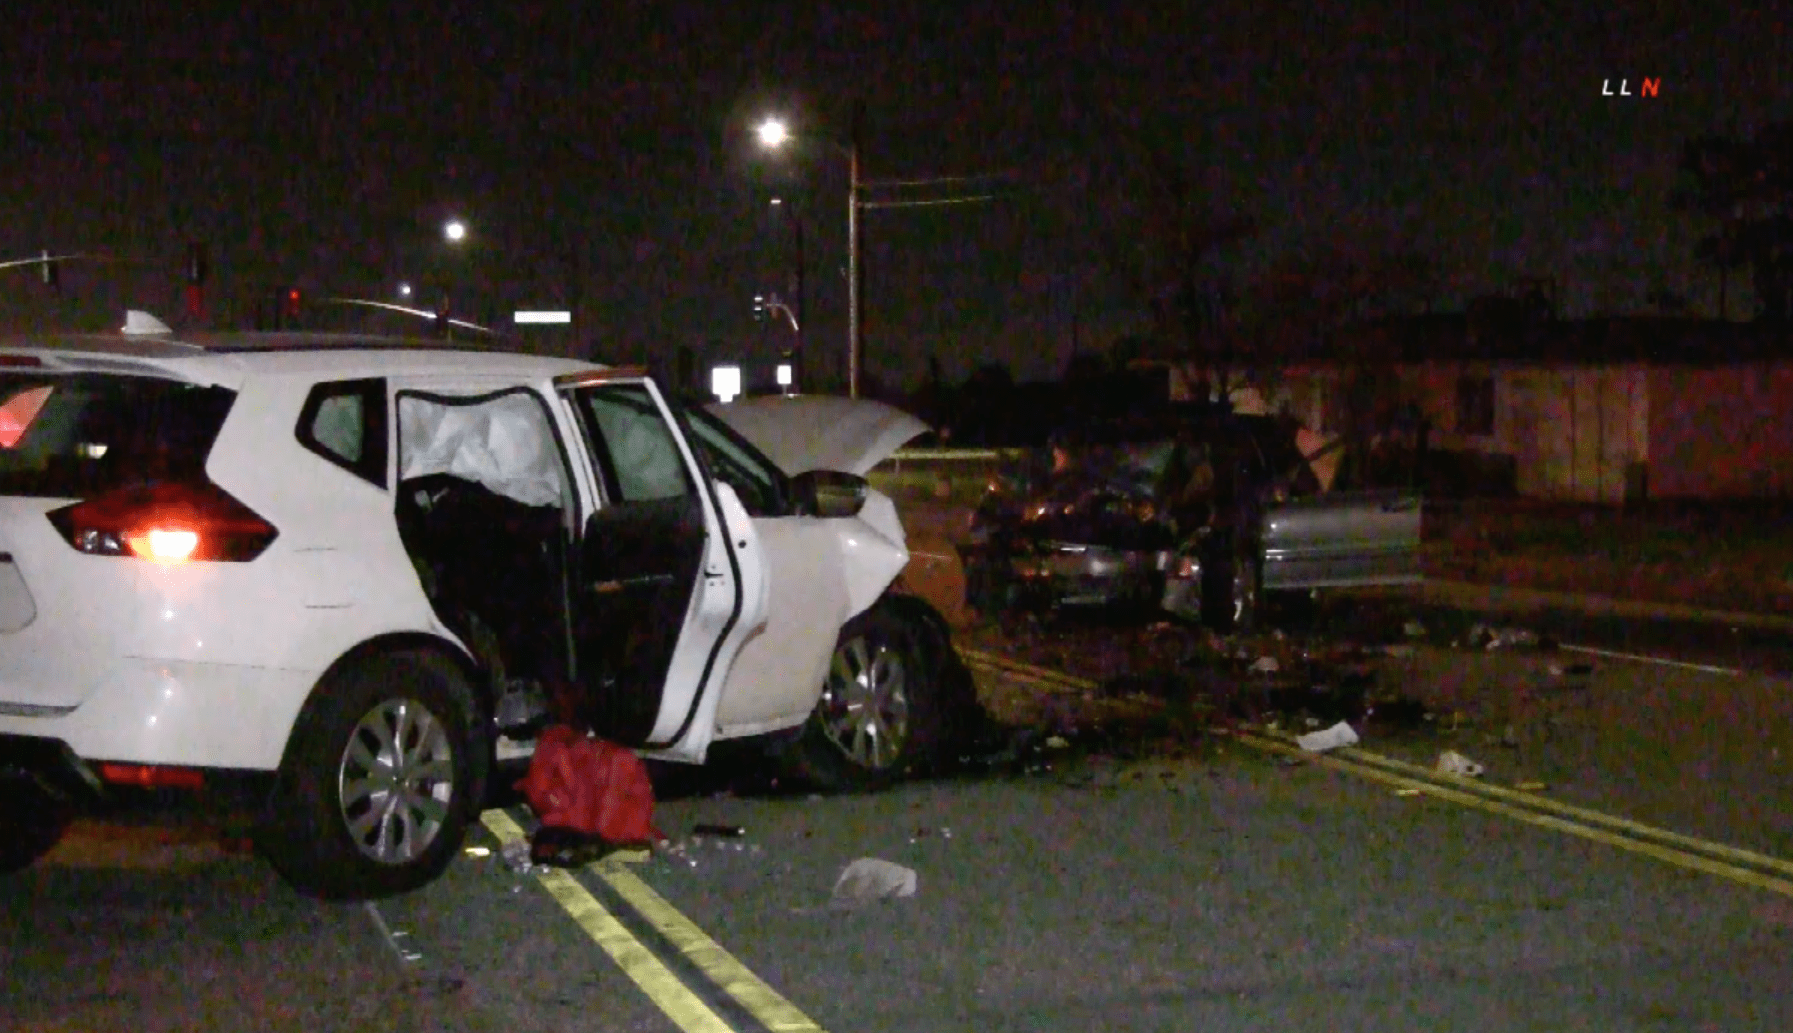 Two heavily damaged vehicles are seen in Fontana following a deadly head-on collision on Jan. 10, 2020. (Credit: Loudlabs)